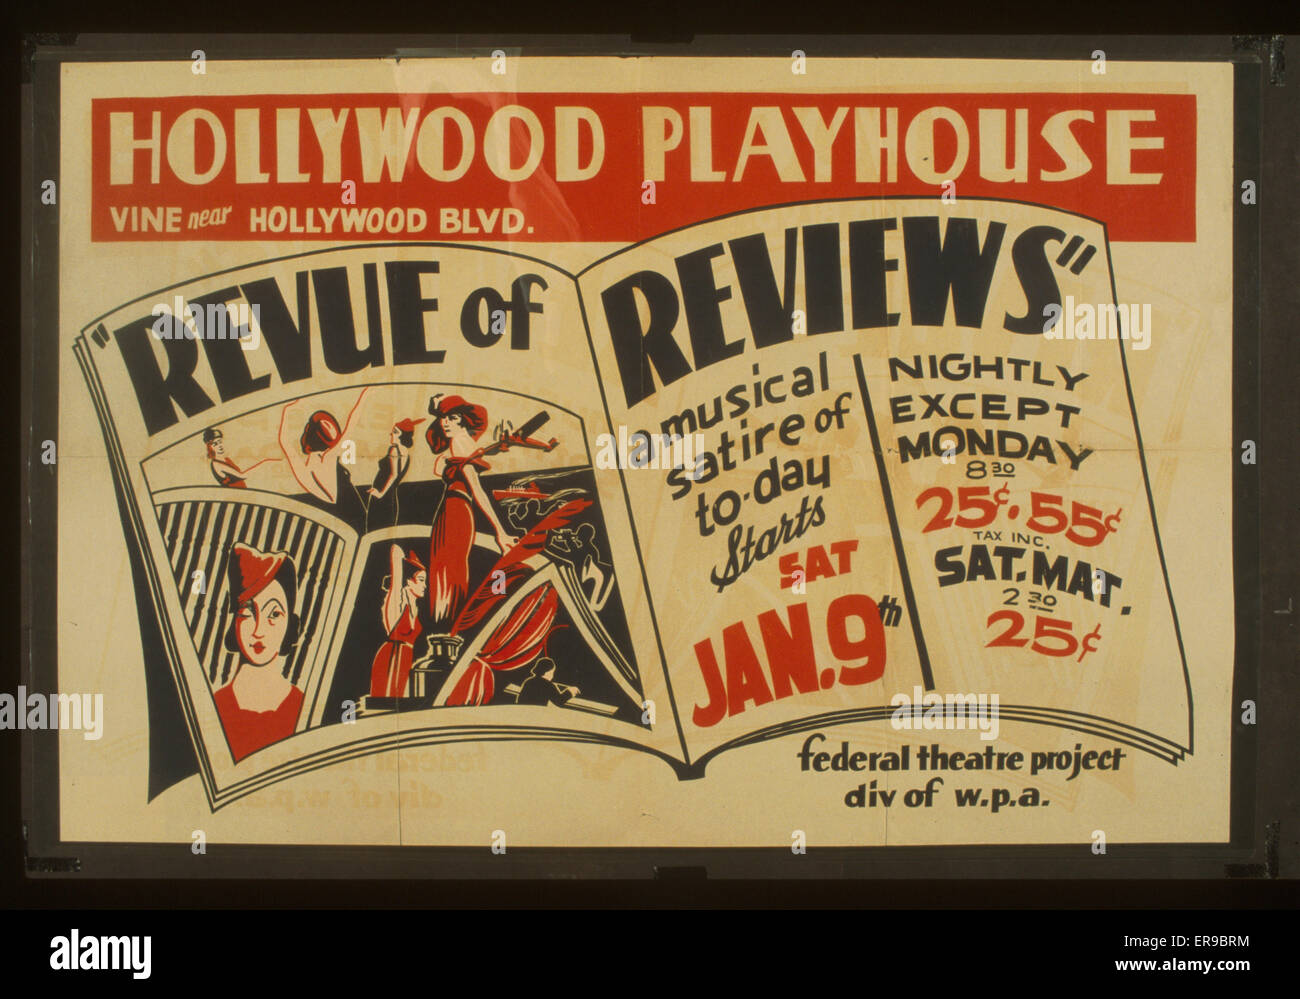 Revue Of Reviews A Musical Satire Of Today Hollywood Playhouse